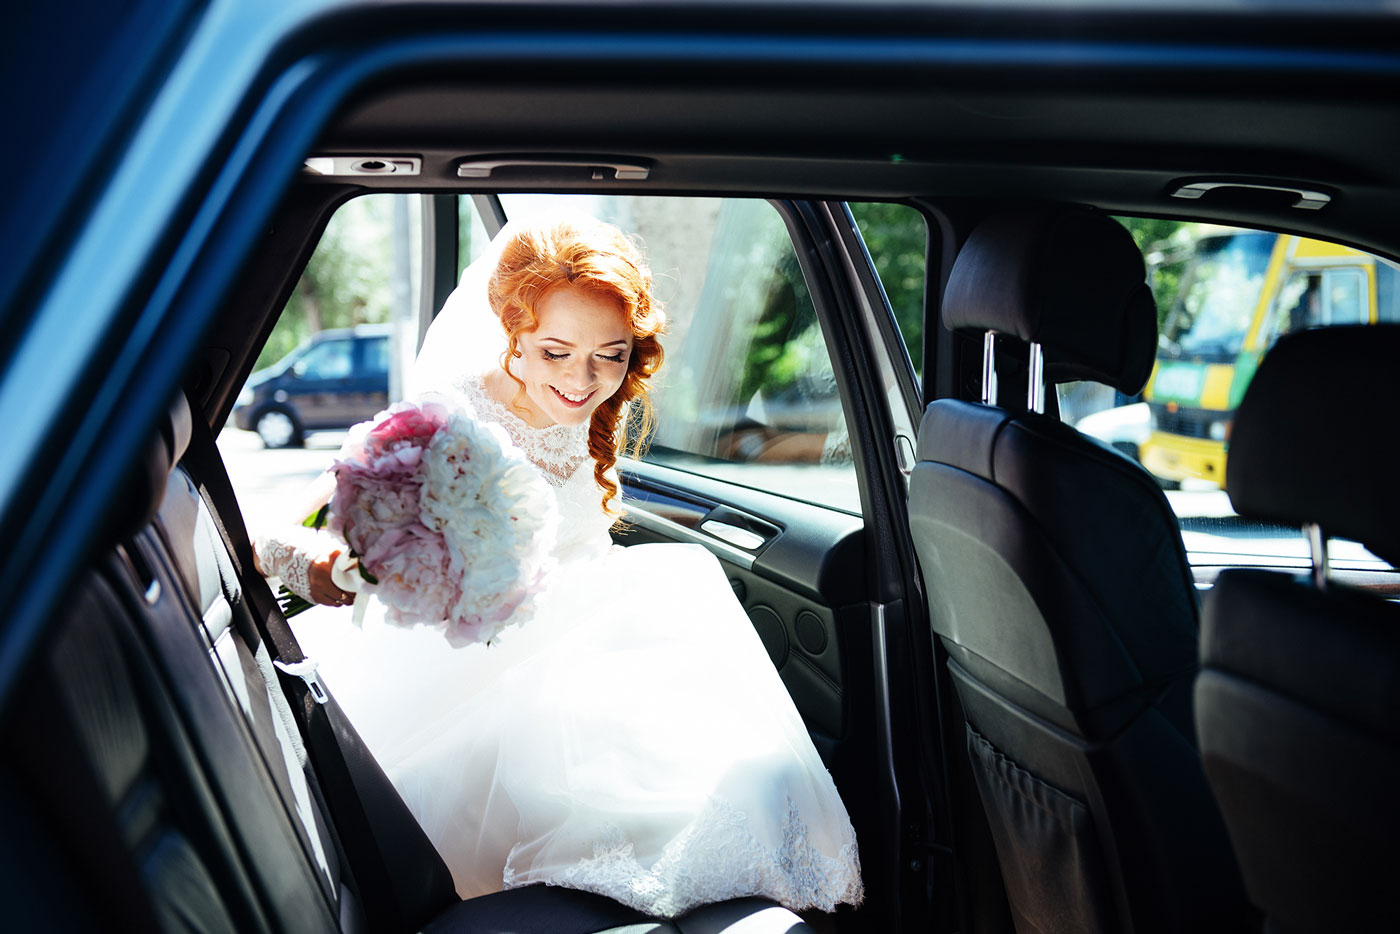 Bride getting in her wedding car